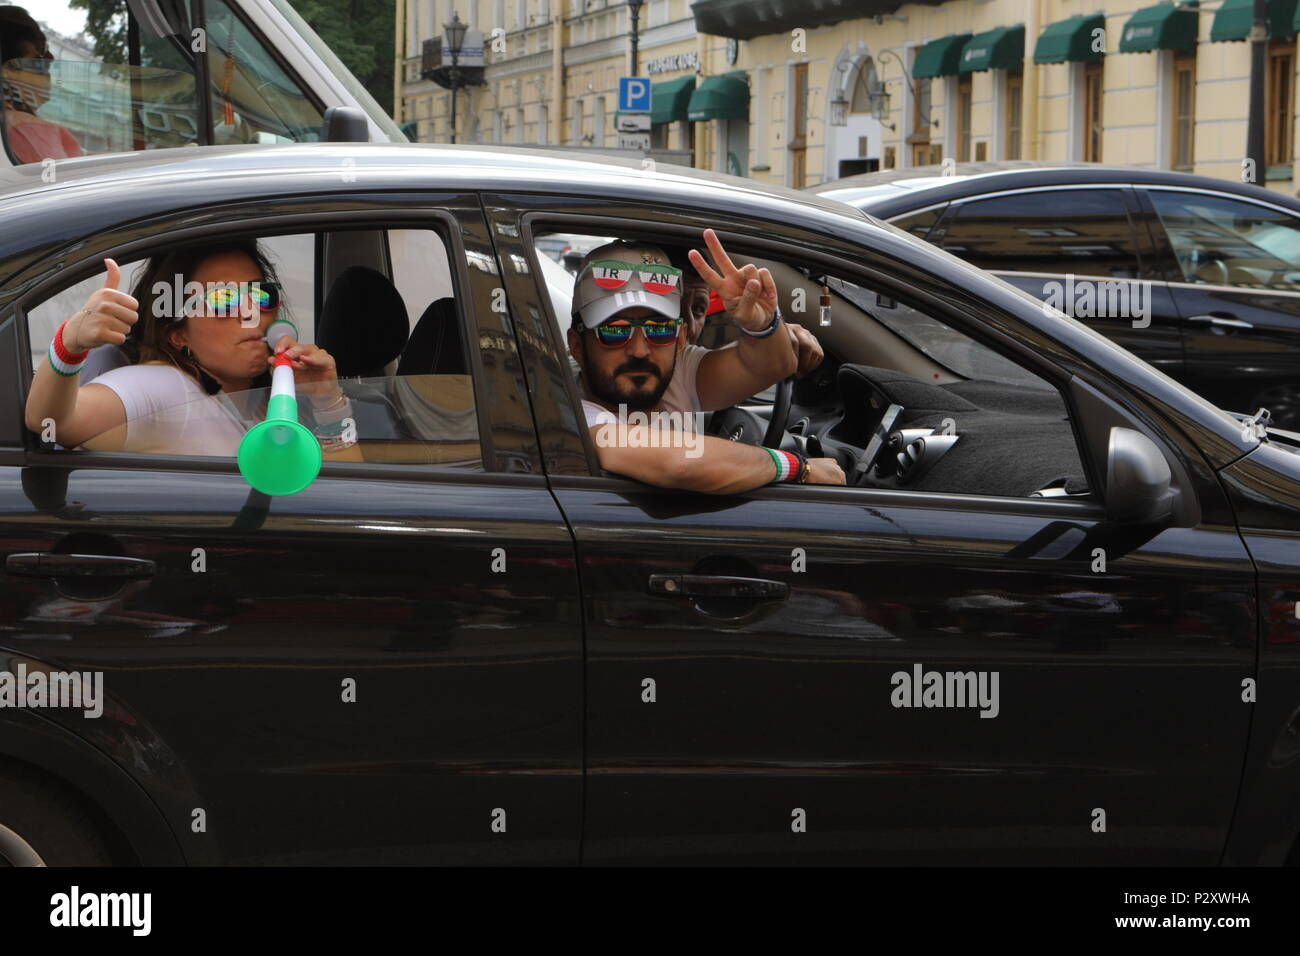 St. Petersburg, Russia - June 15, 2018: Iranian football fans with attributes in a car in Saint Petersburg on the day of first match of FIFA World Cup - Stock Image